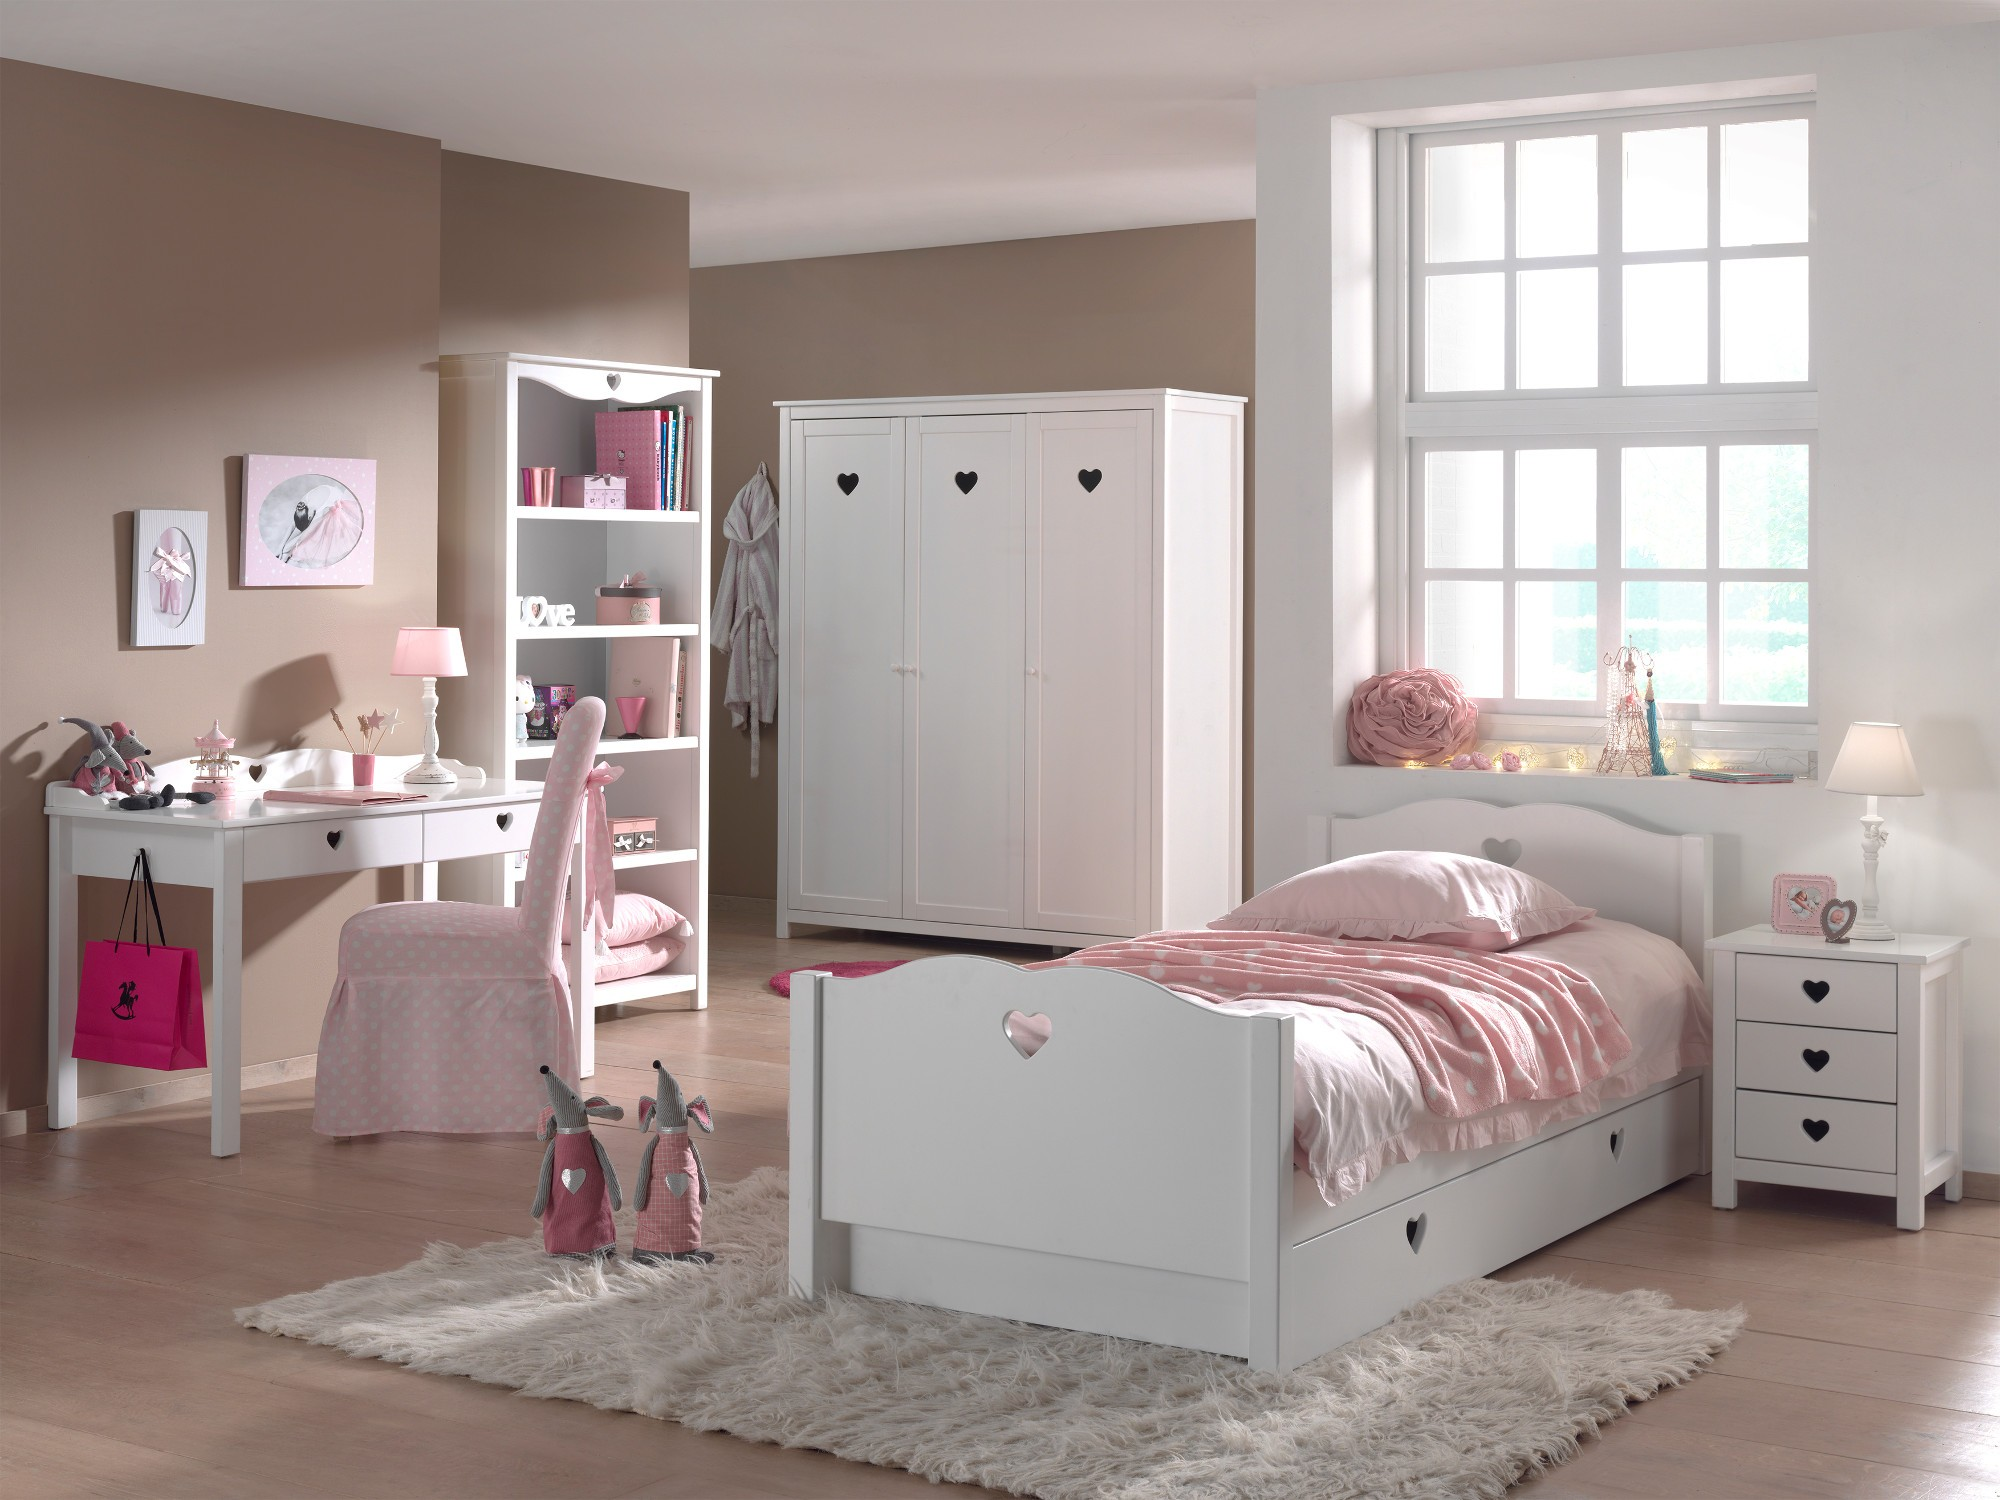 schminktisch amori wei kinder jugendzimmer beistellm bel. Black Bedroom Furniture Sets. Home Design Ideas